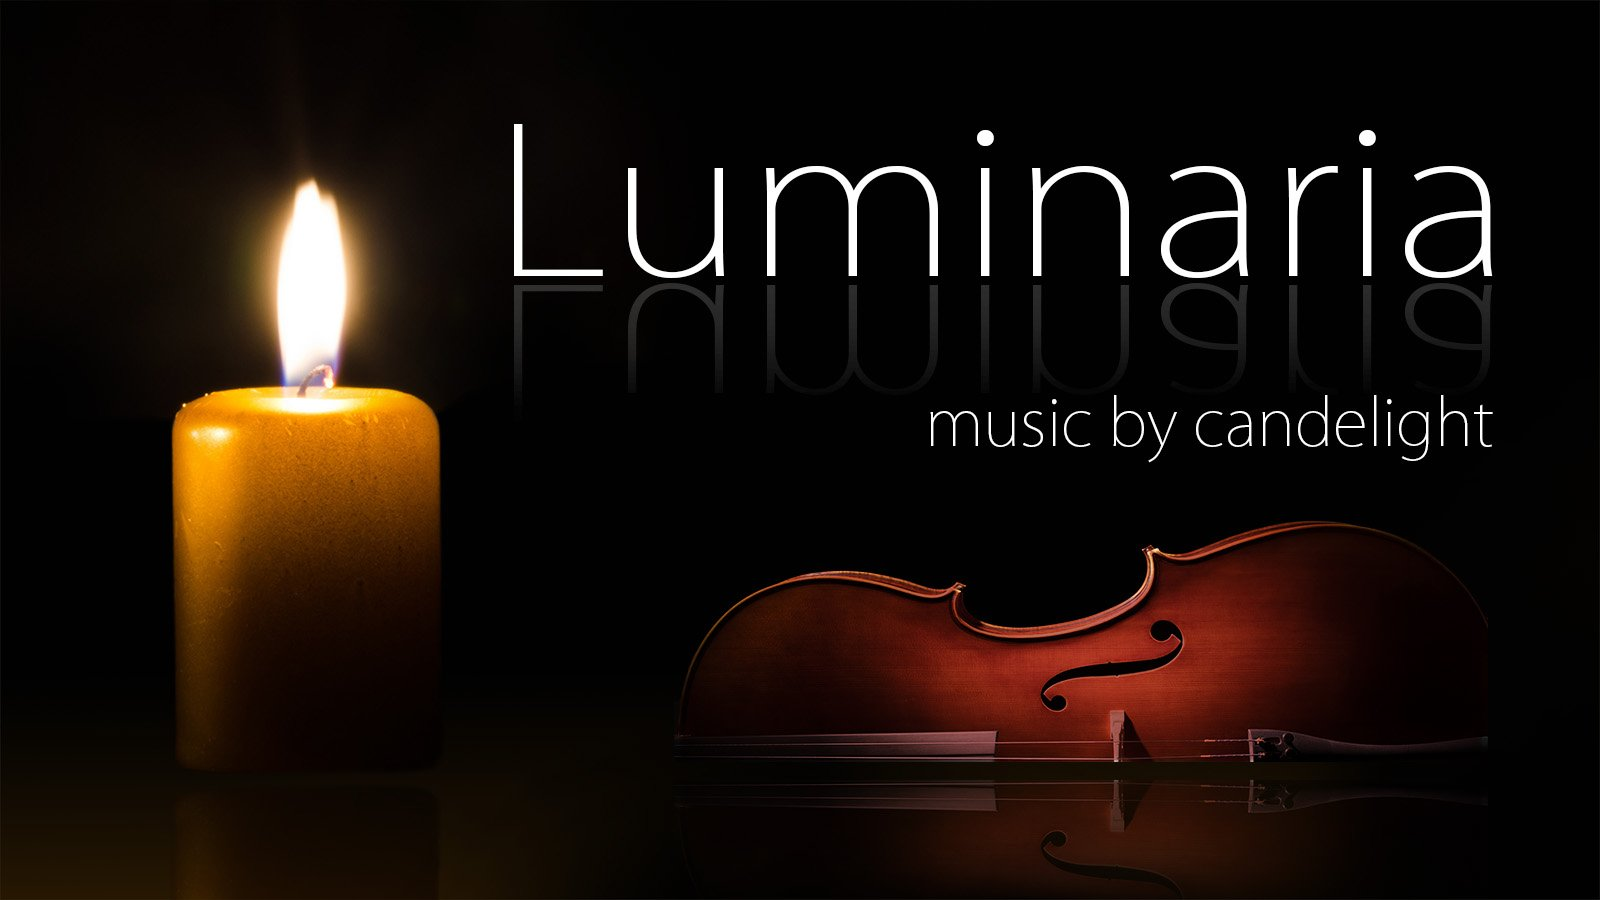 Luminaria Music by Candlelight